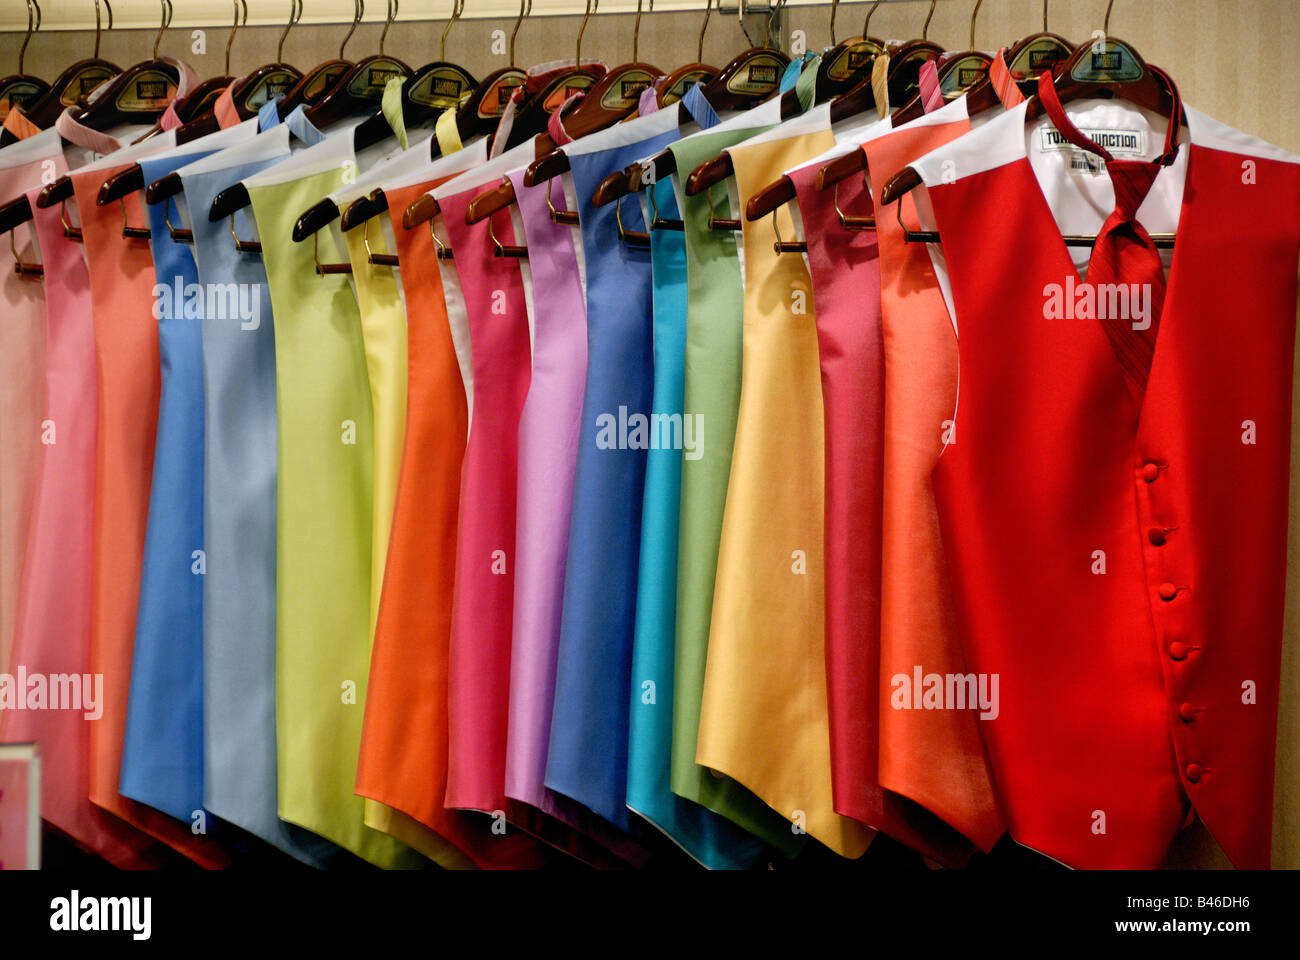 Men's Tuxedo Vests in a Rainbow of Colors - Stock Image